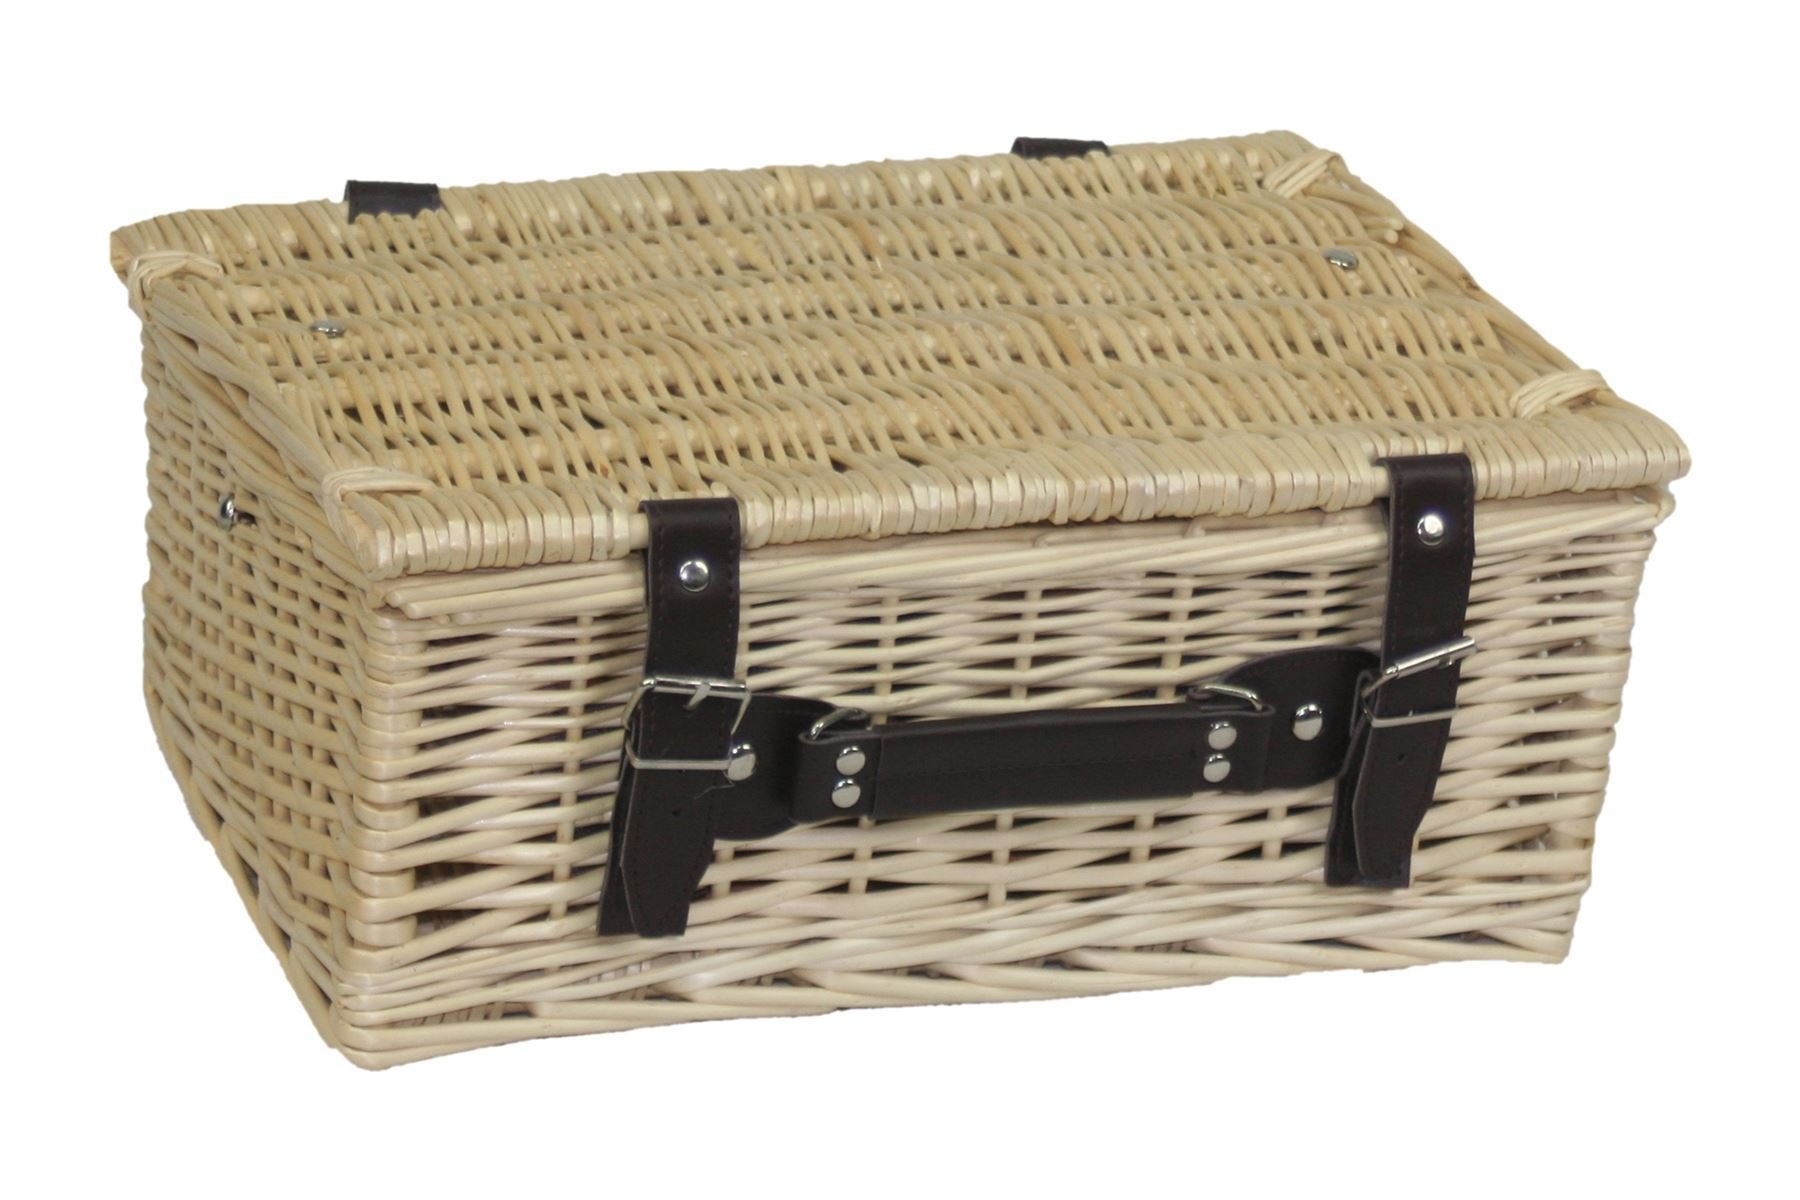 Lovely 36cm empty wick basket finished in a light summer willow by Red Hamper